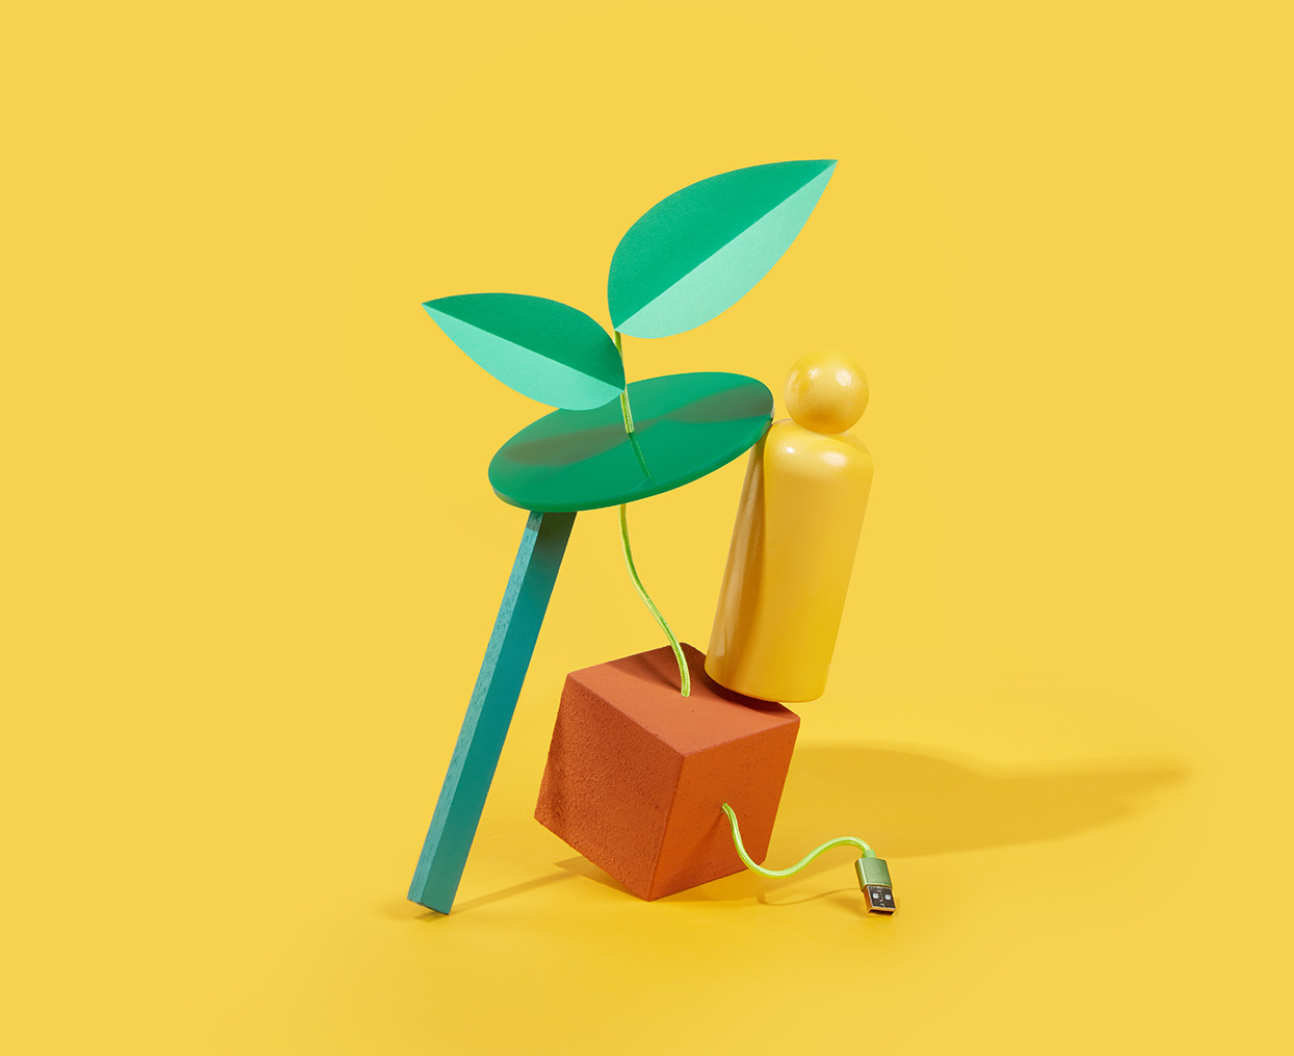 A digital illustration of a green plant connected to an orange cube by a USB cable and a yellow playing piece representing a human form perched on top precariously